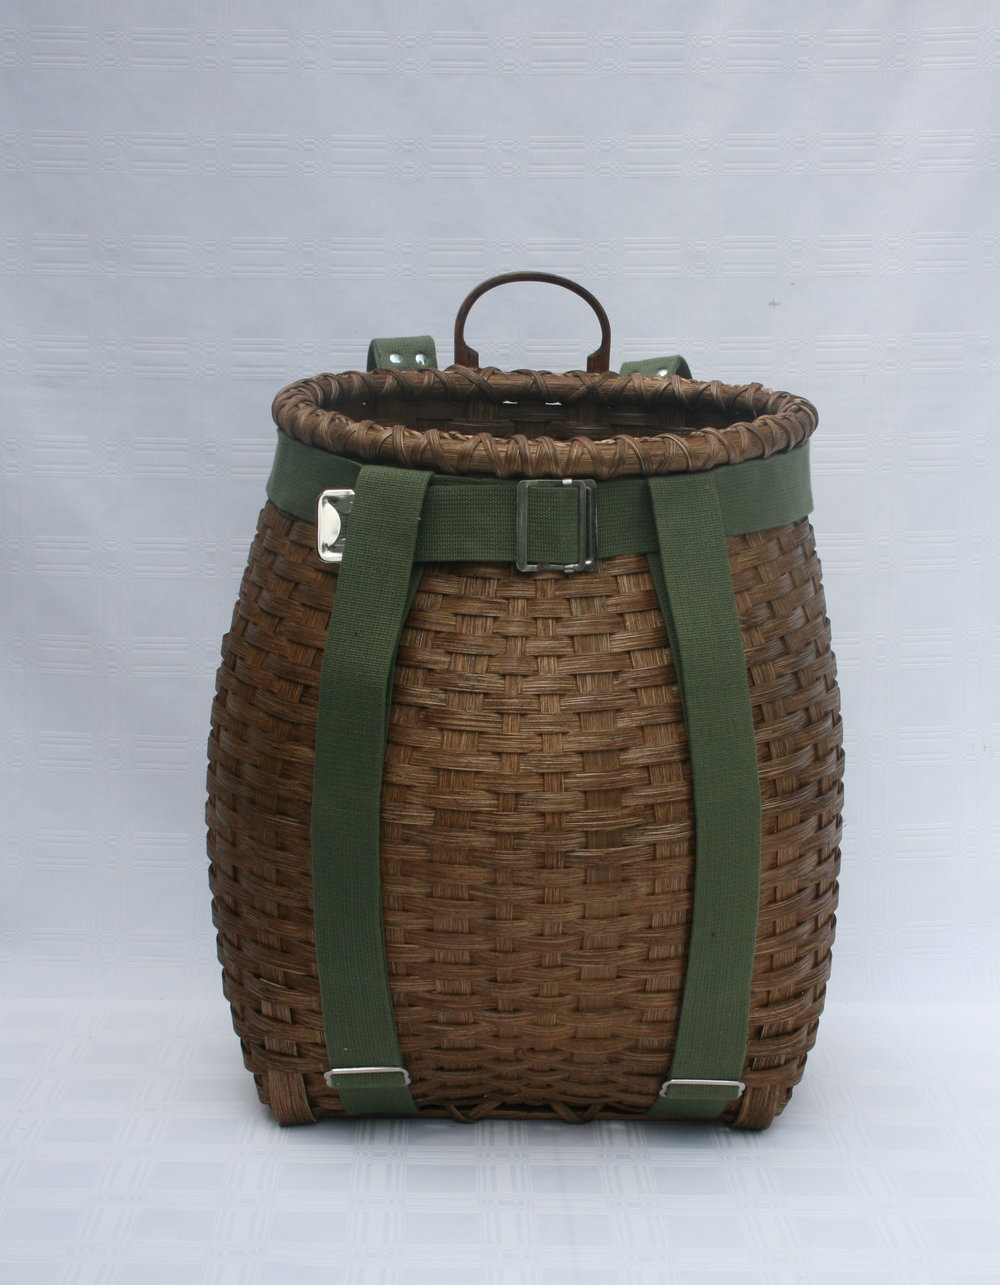 August 31-Sept 2 Sightseer Pack Basket - This medium sized pack basket is great for teen or adult men or women.  Basket dimensions are   8 1/2